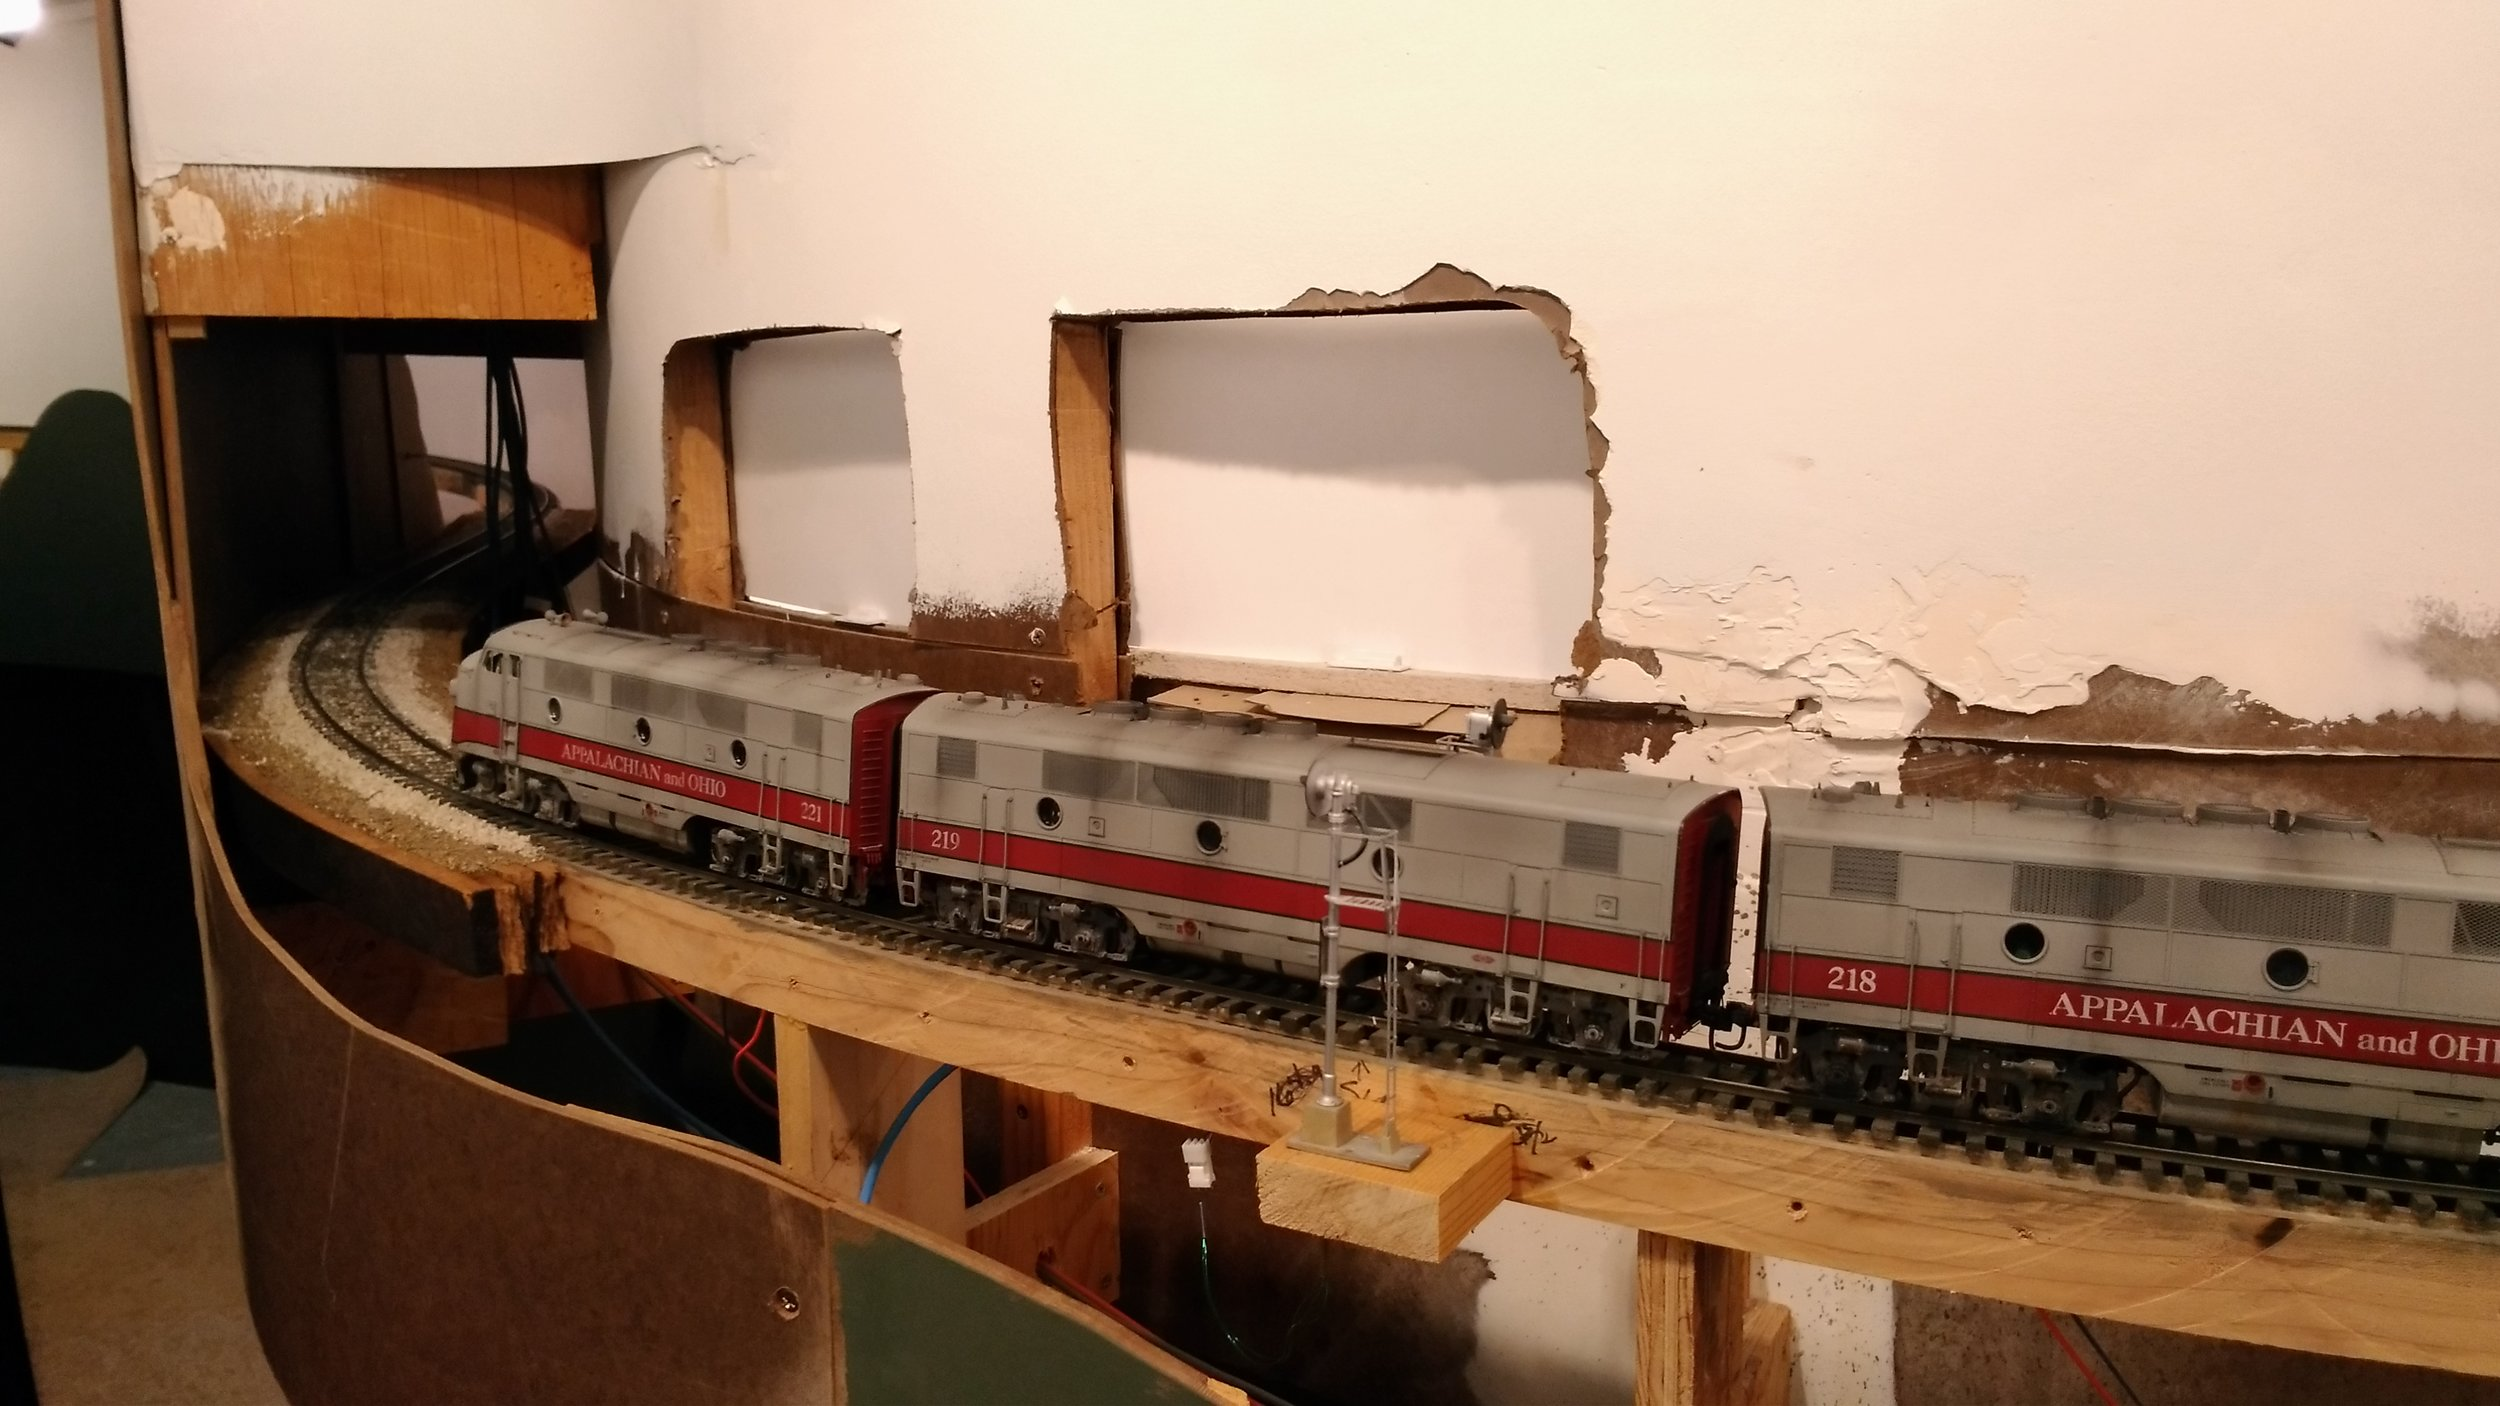 Typical of mountain railroading, the mainline now dives into County Line Tunnel and a gentle reverse curve. Once the tunnel liner is installed, the fascia will get its final spackle  and paint, the last on the layout!